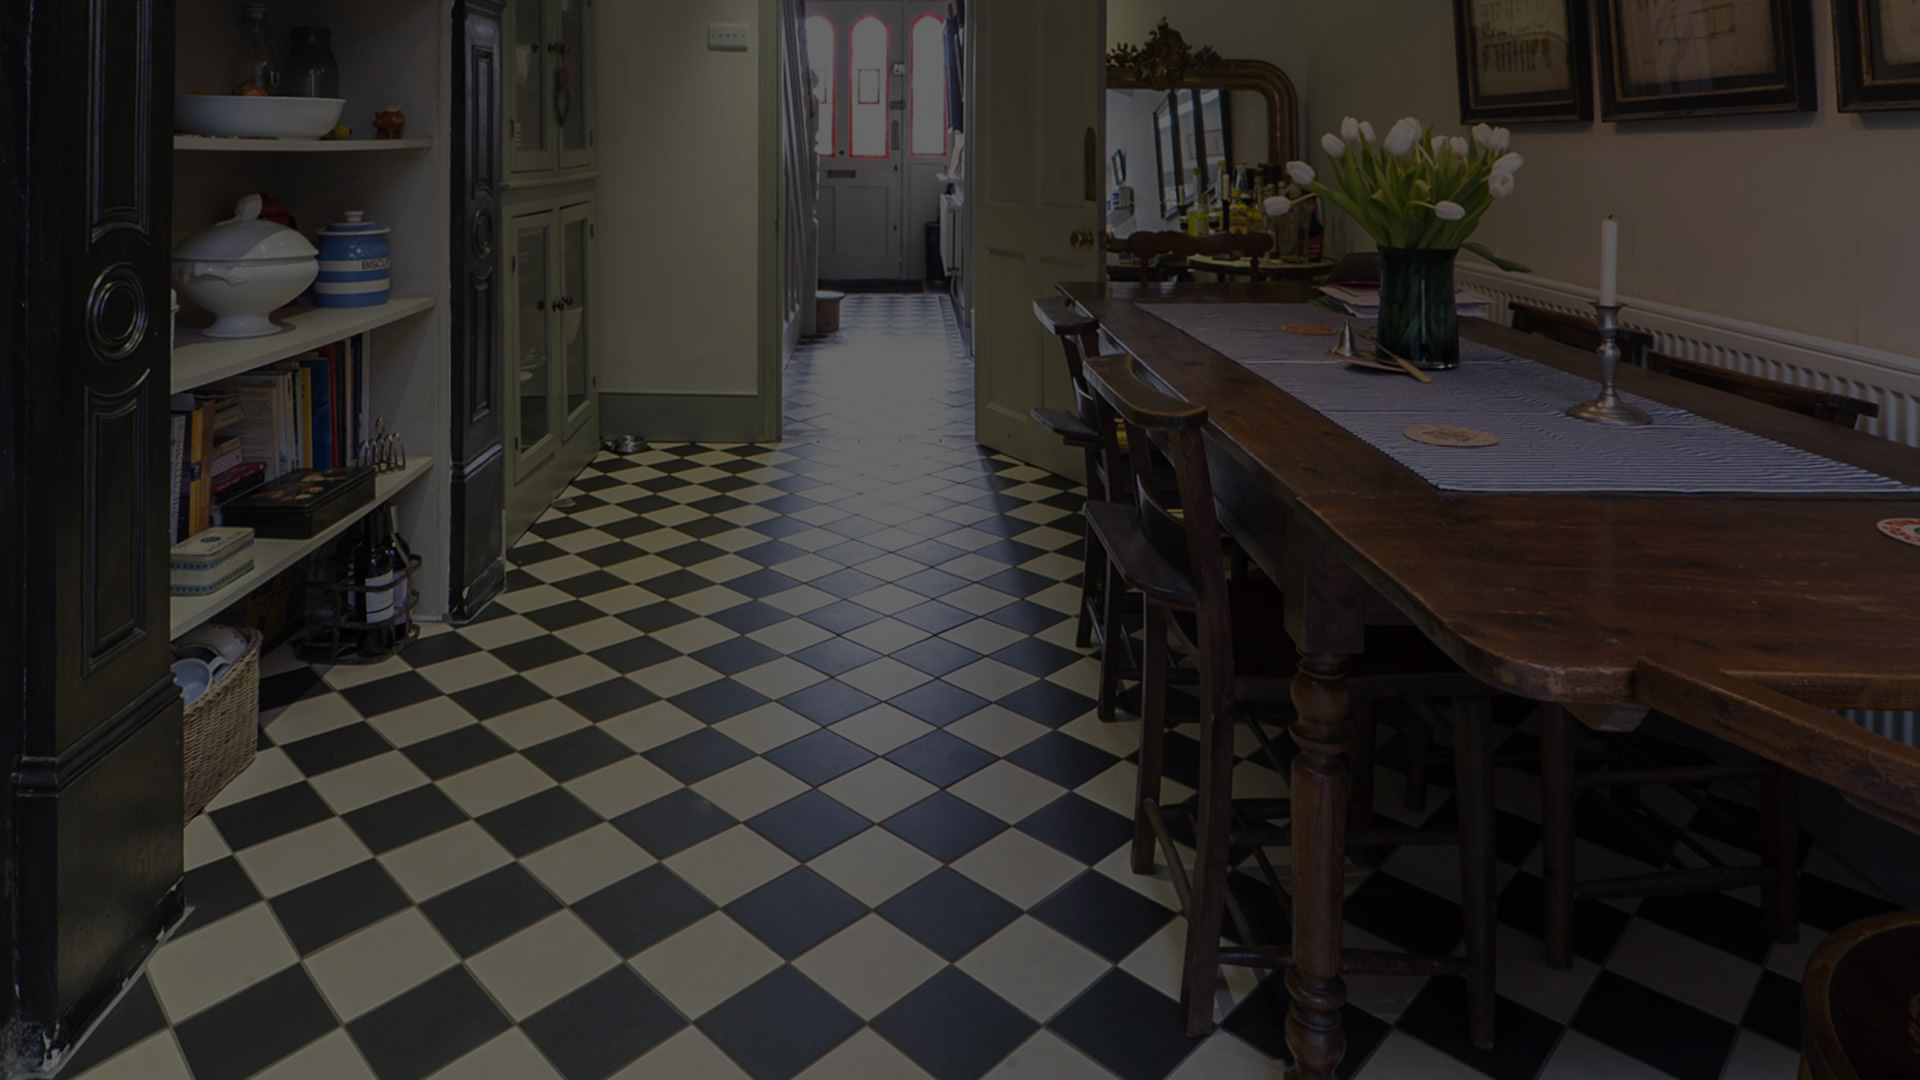 Geometric Floor Tiles For Traditional And Modern Looks Olde English Tile Collection